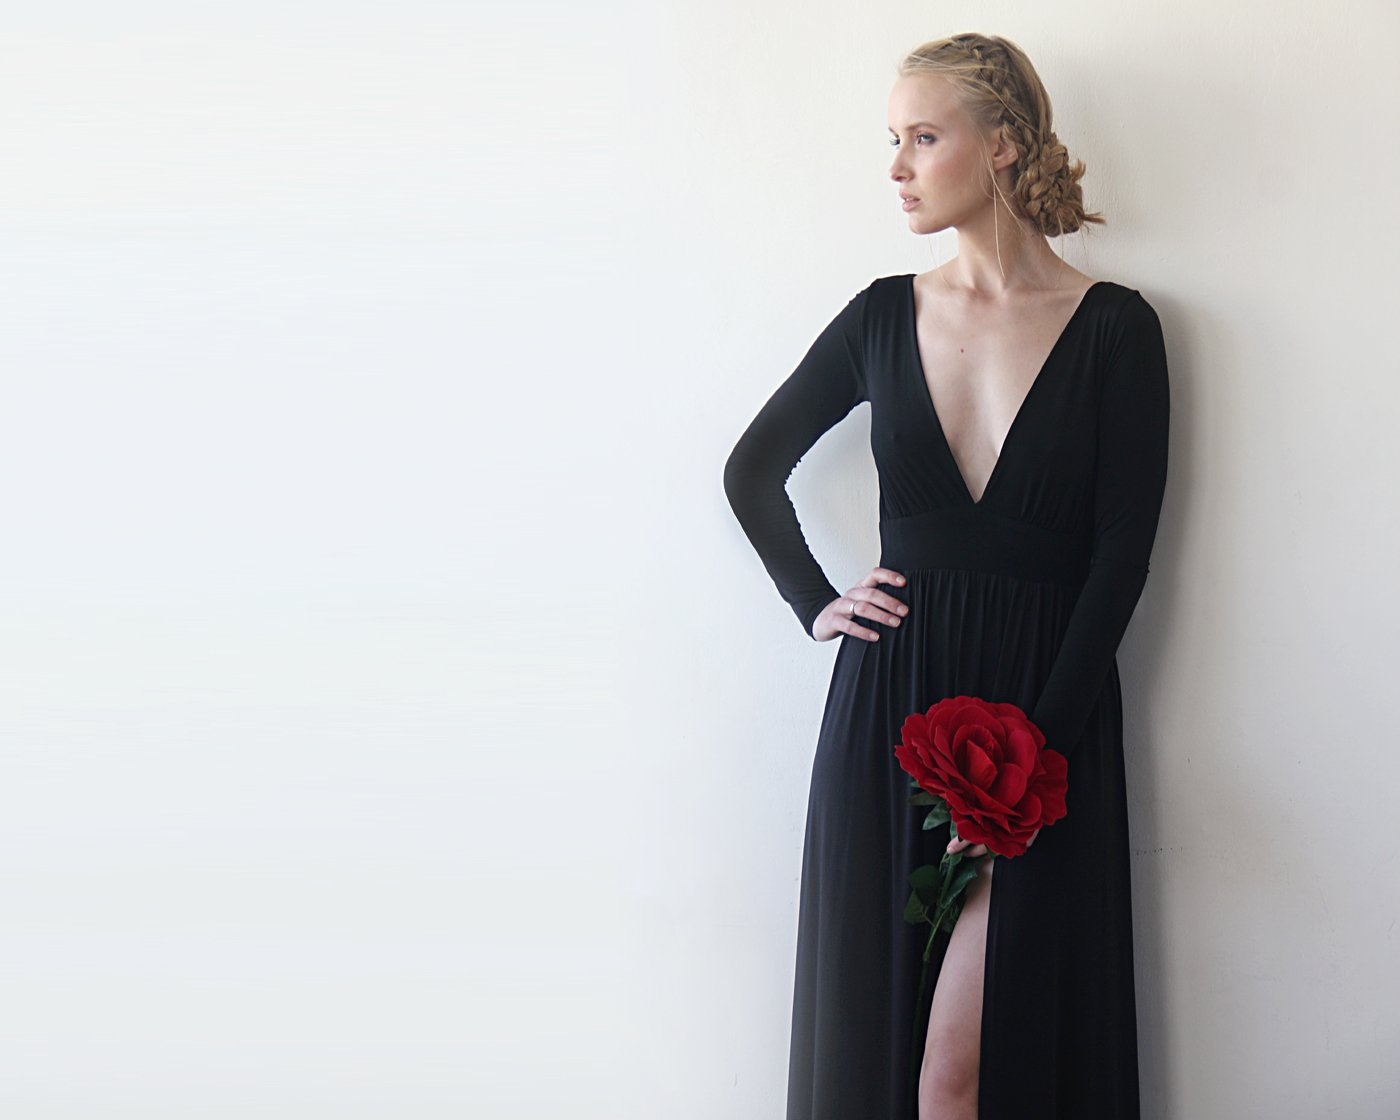 Deep-v Neckline Dress With A Sexy Slit, Long Sleeves Formal Dress, Black Evening Dress 1198 - Blushfashion